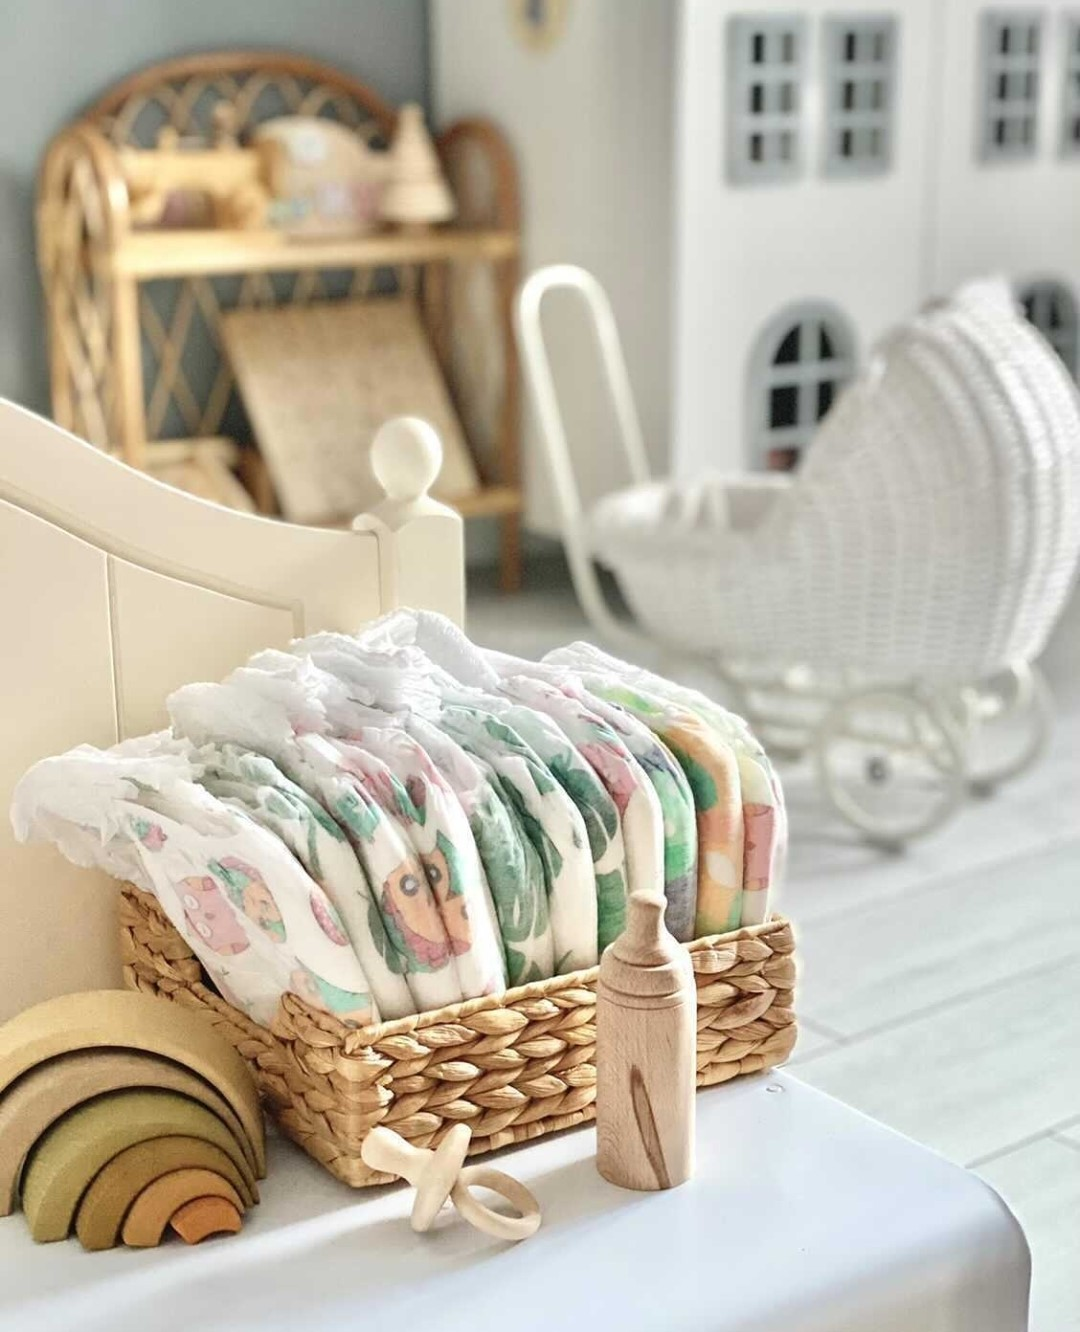 Baby checklist - diapers